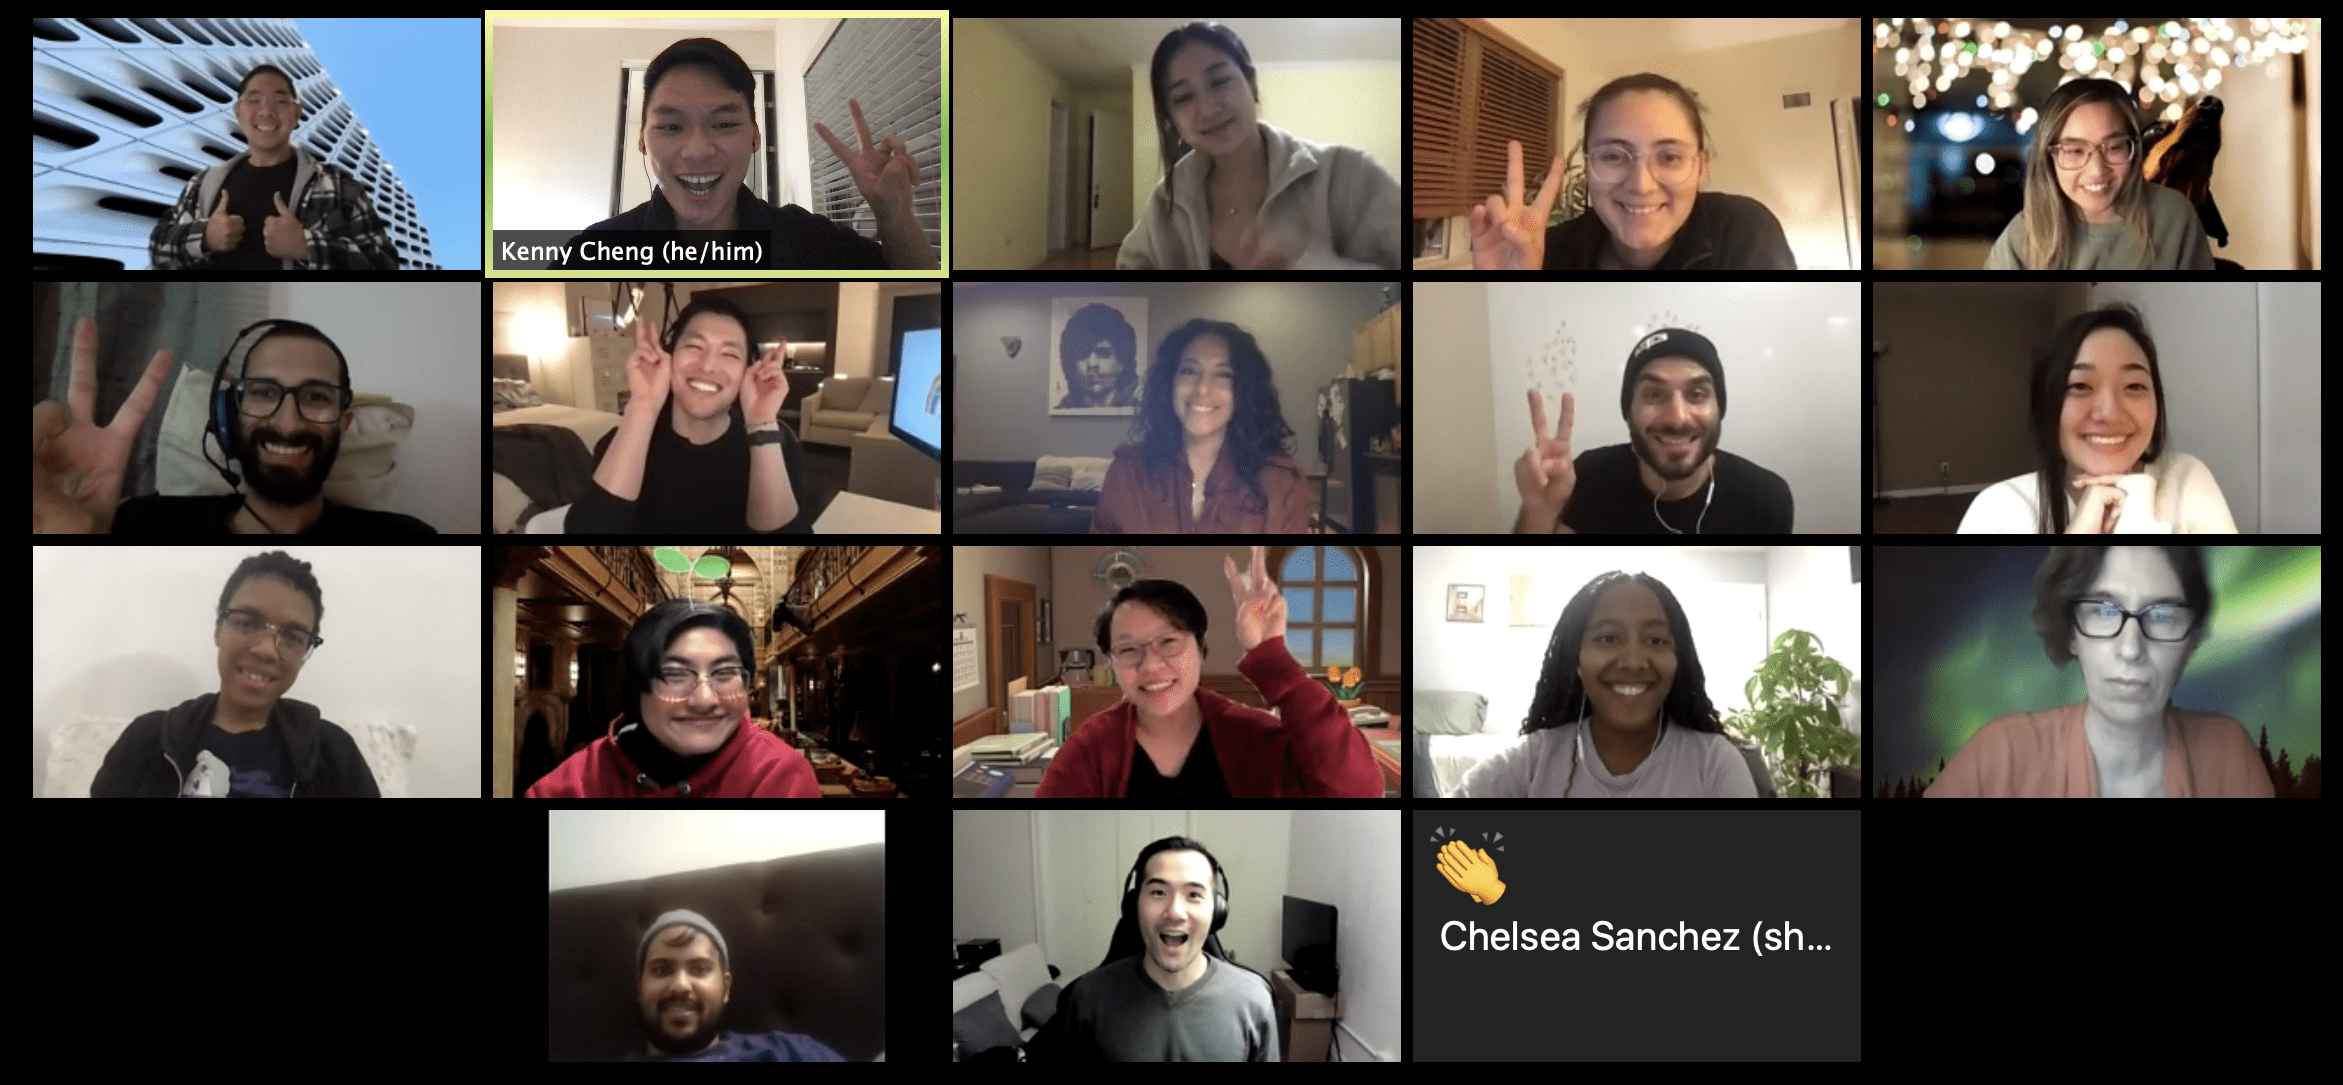 Grid of 18 people in a video call, many holding up their hands with peace signs.